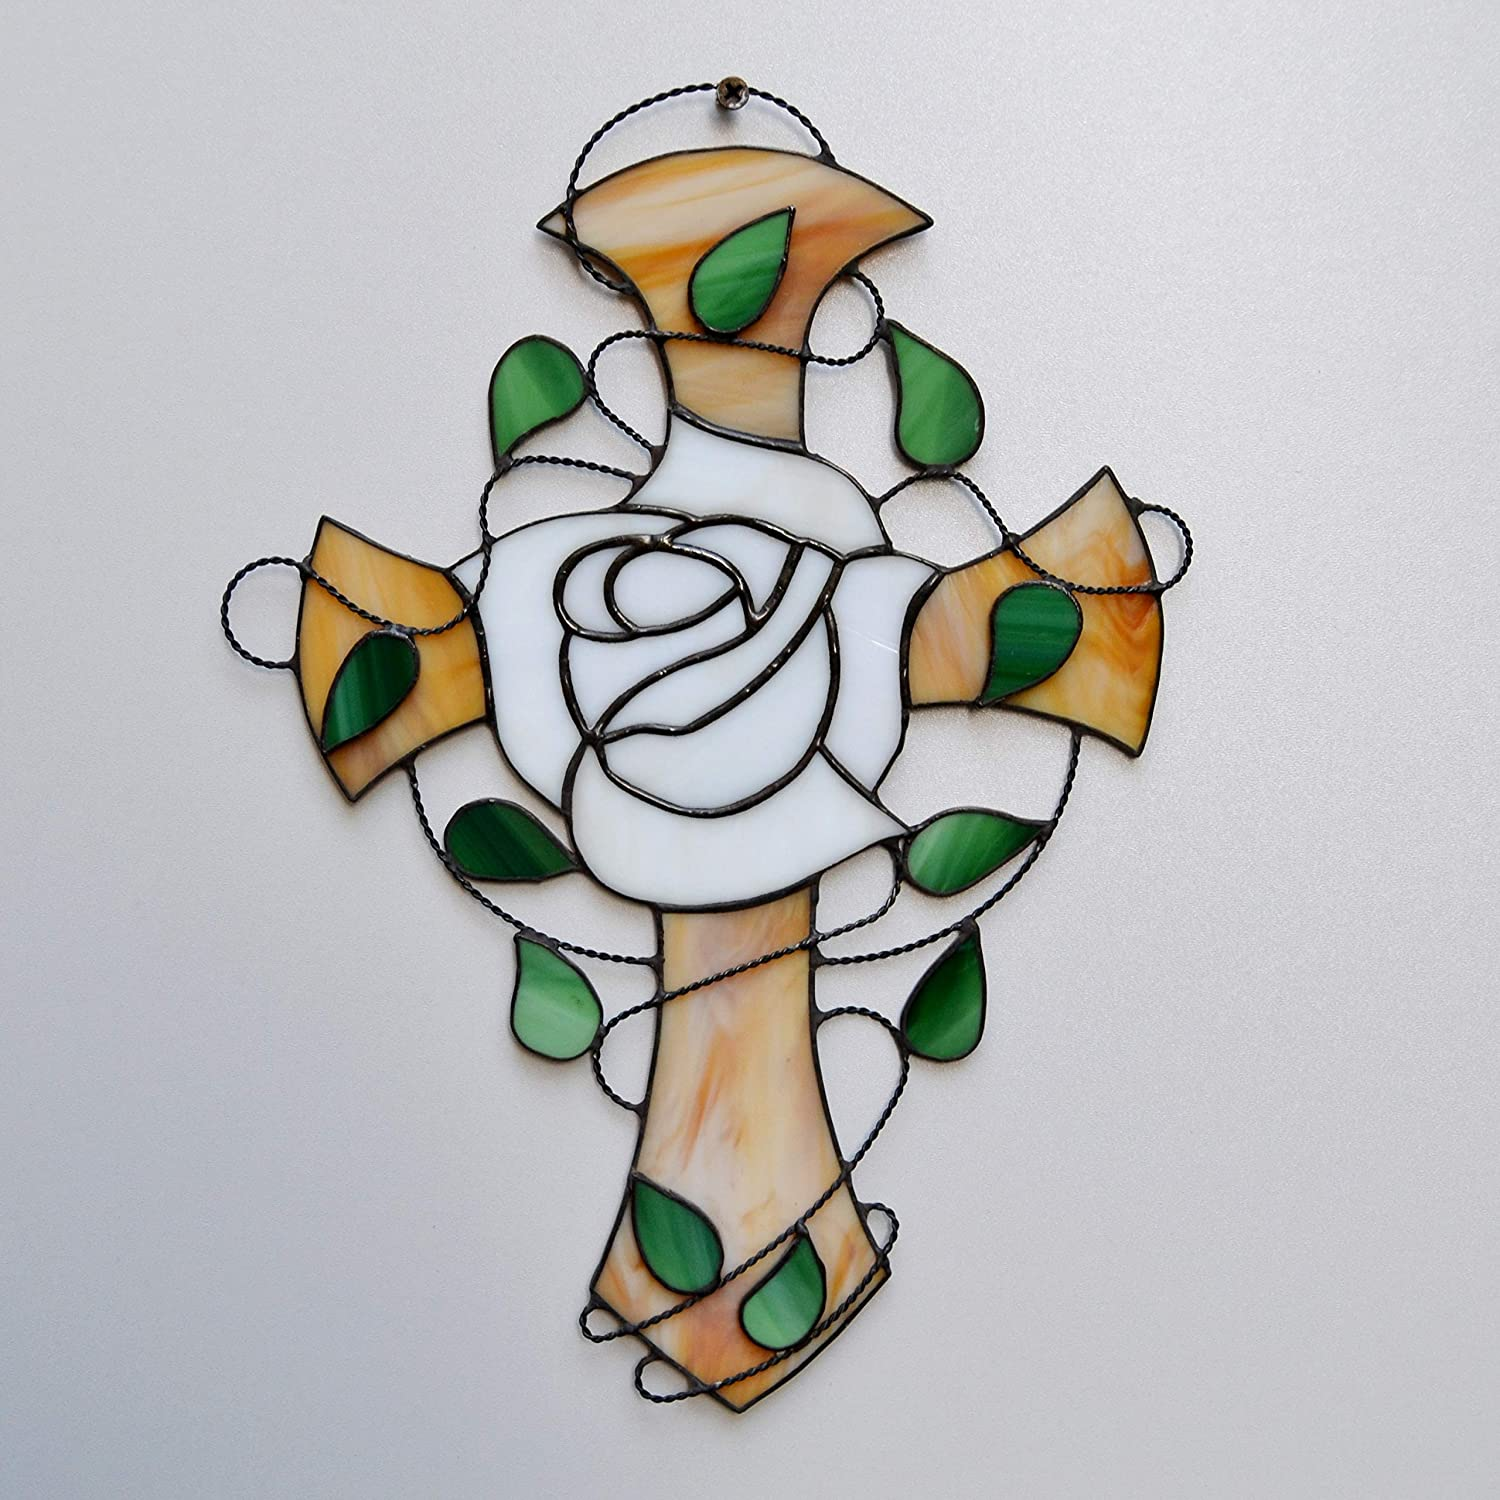 Amazon Com White Rose Cross Stained Glass Window Hanging Or Wall Decor Rosicrucian Panel For Home Or Church Handmade